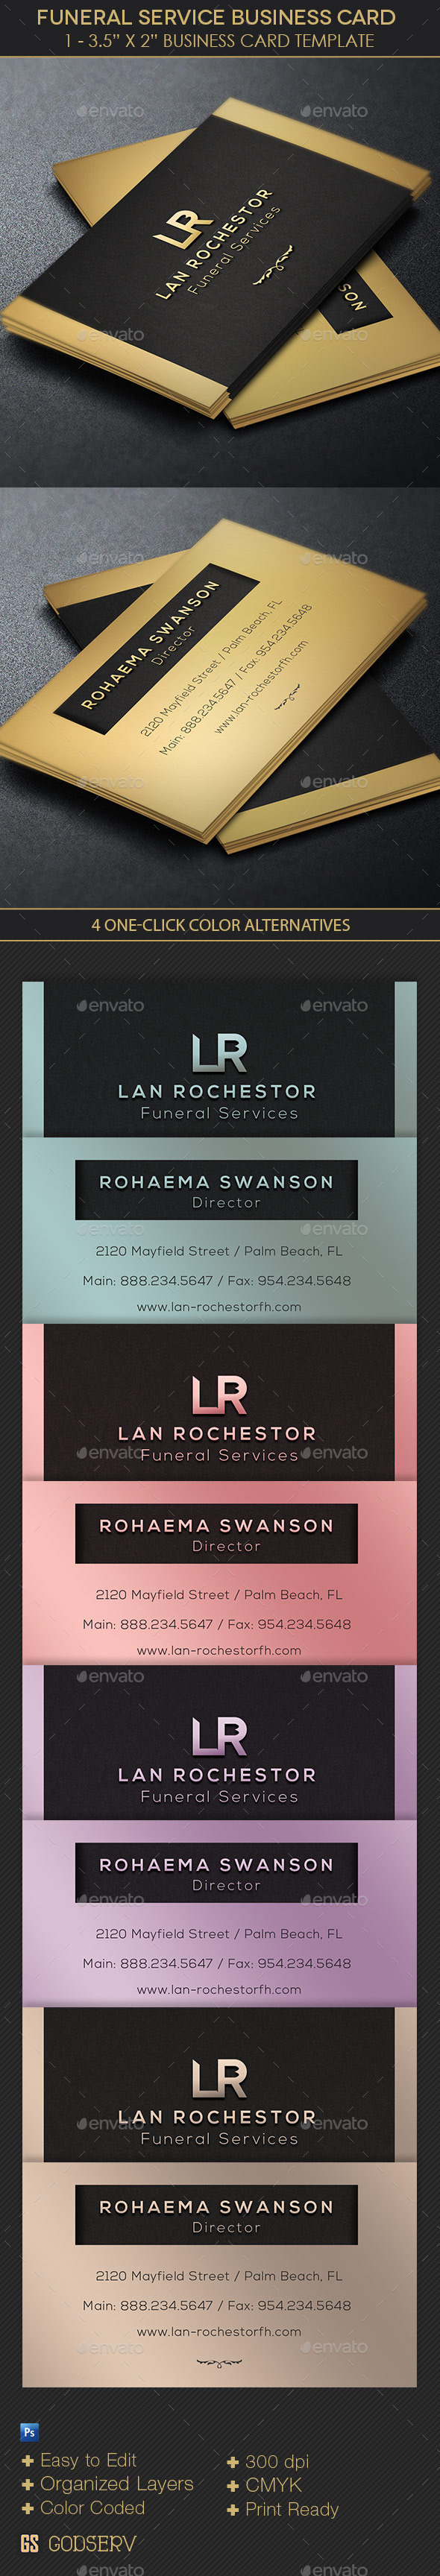 Funeral Director Business Card Template By Godserv Graphicriver